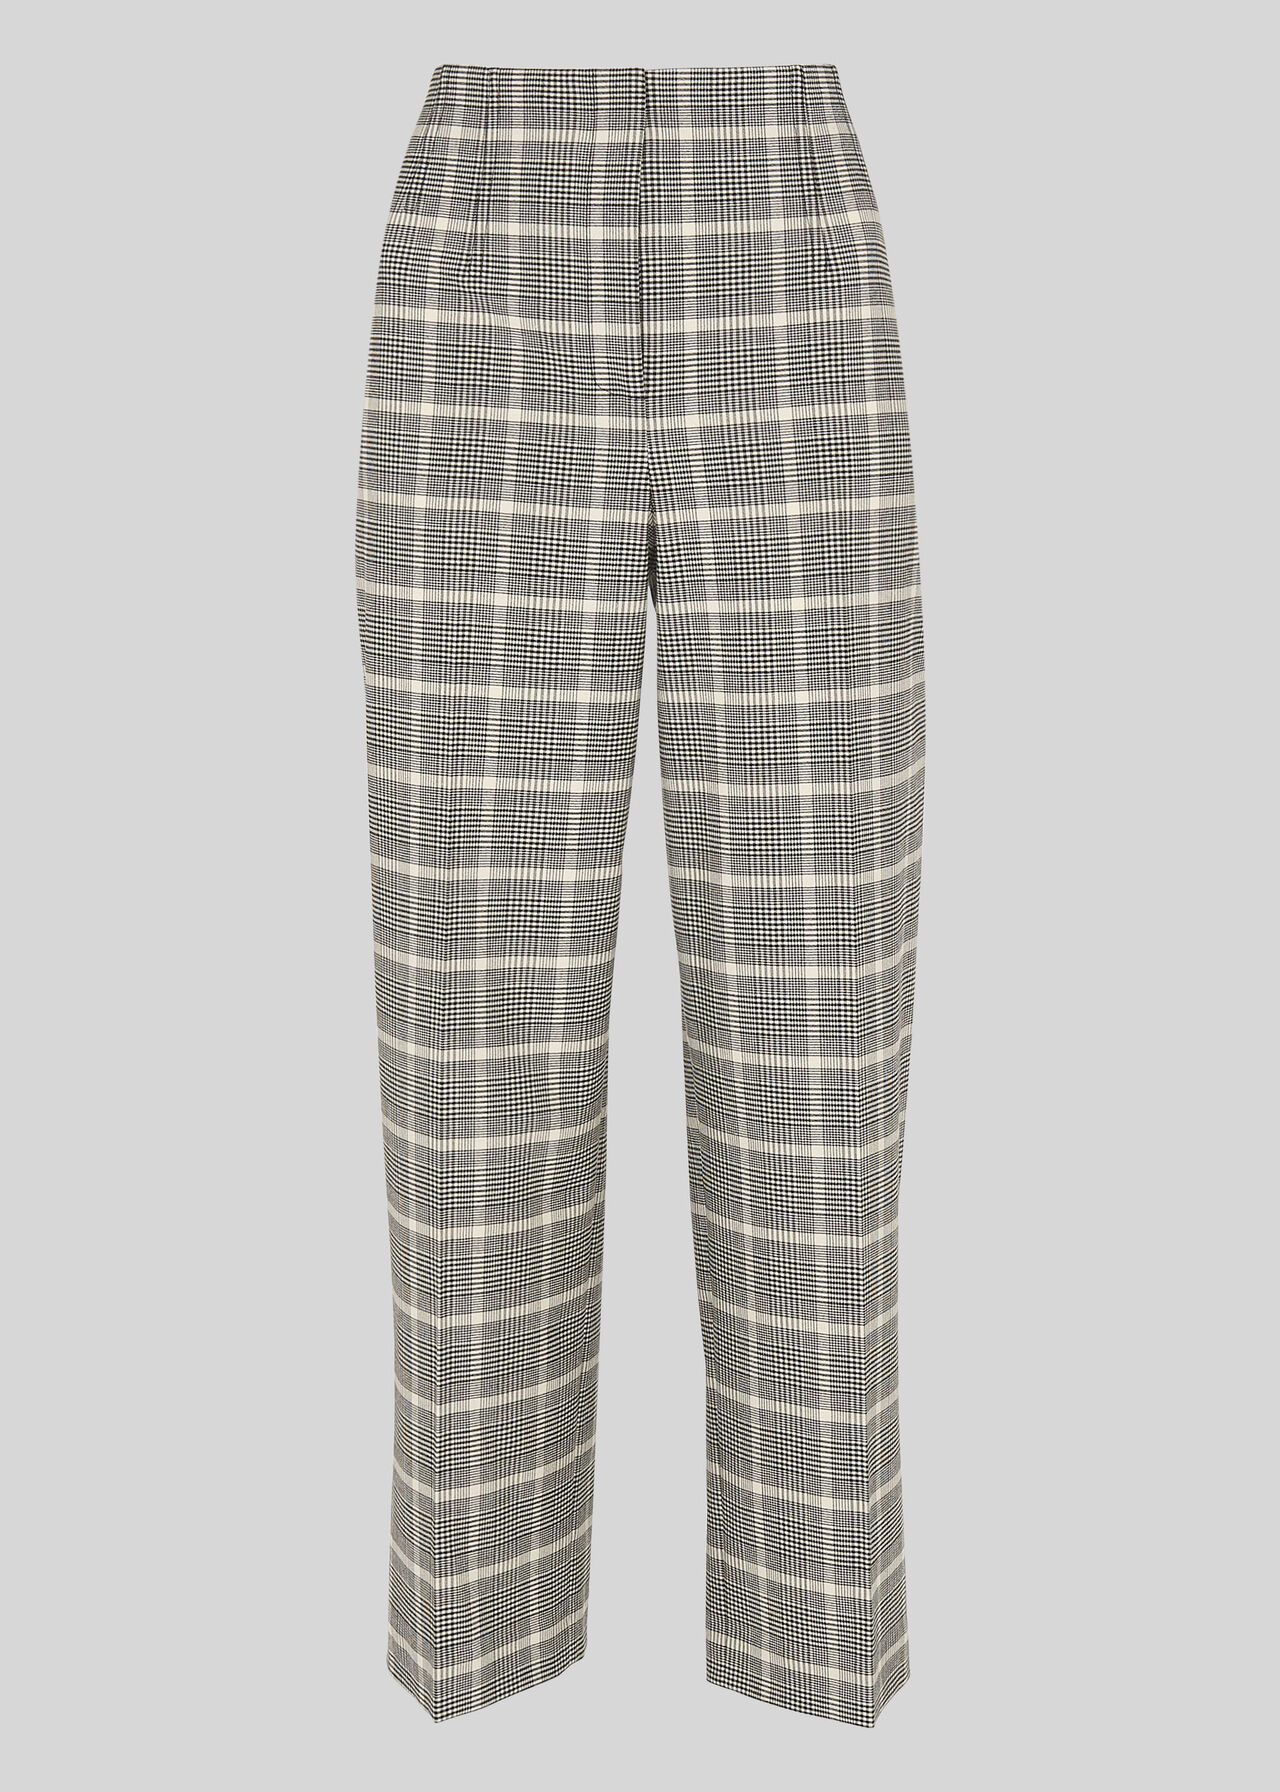 Courtney Check Trouser Black and White